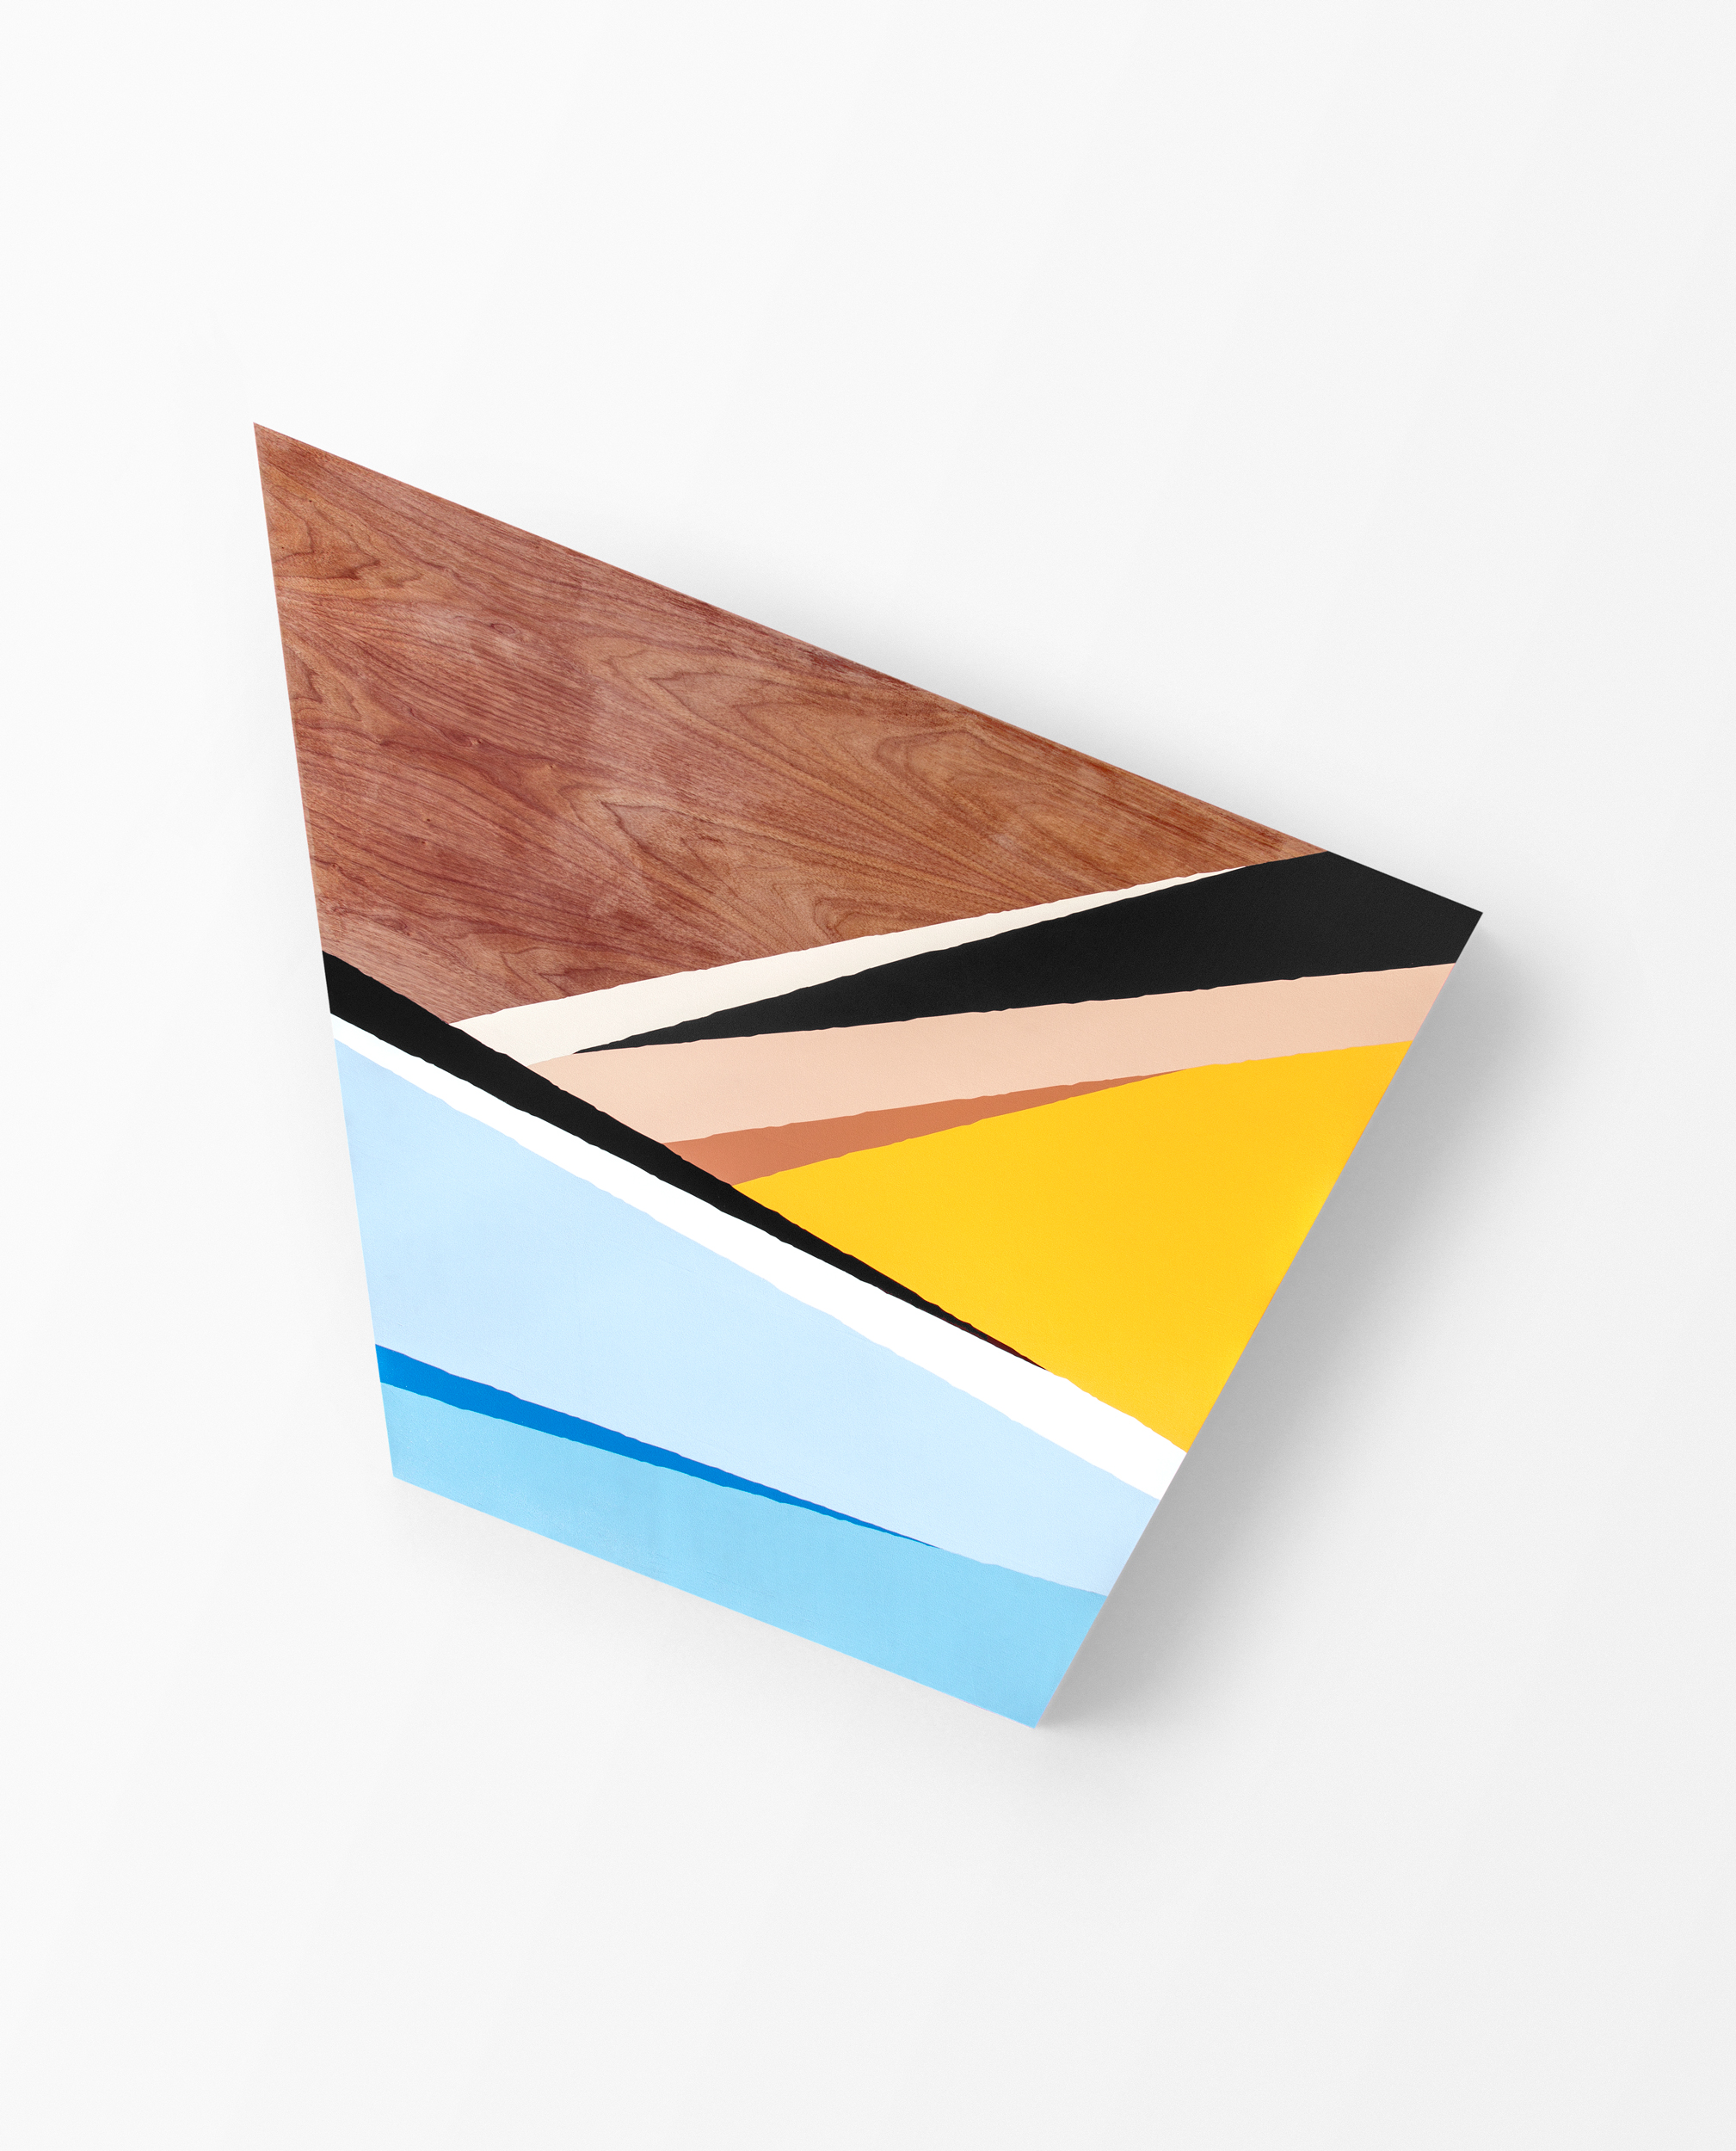 Max, 2016 Spray paint and polyurethane on walnut panel 68 x 48 x 2.5 inches